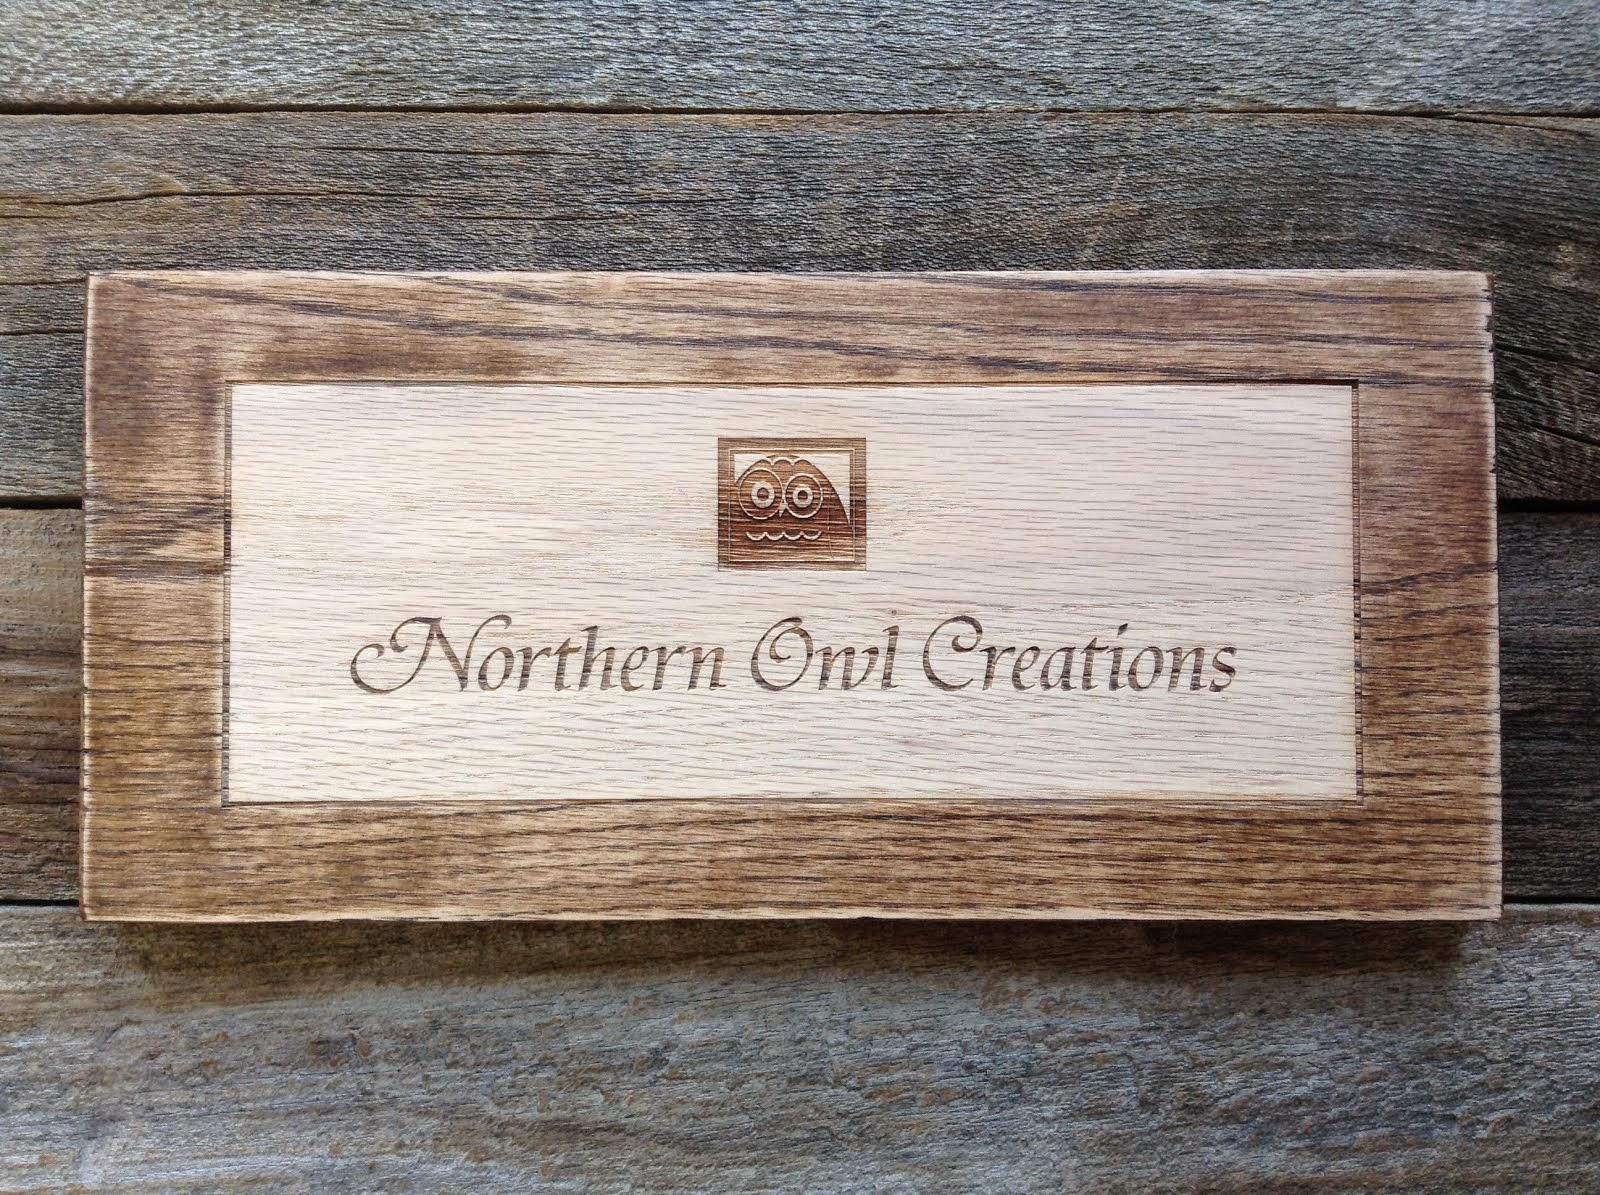 Northern Owl Creations